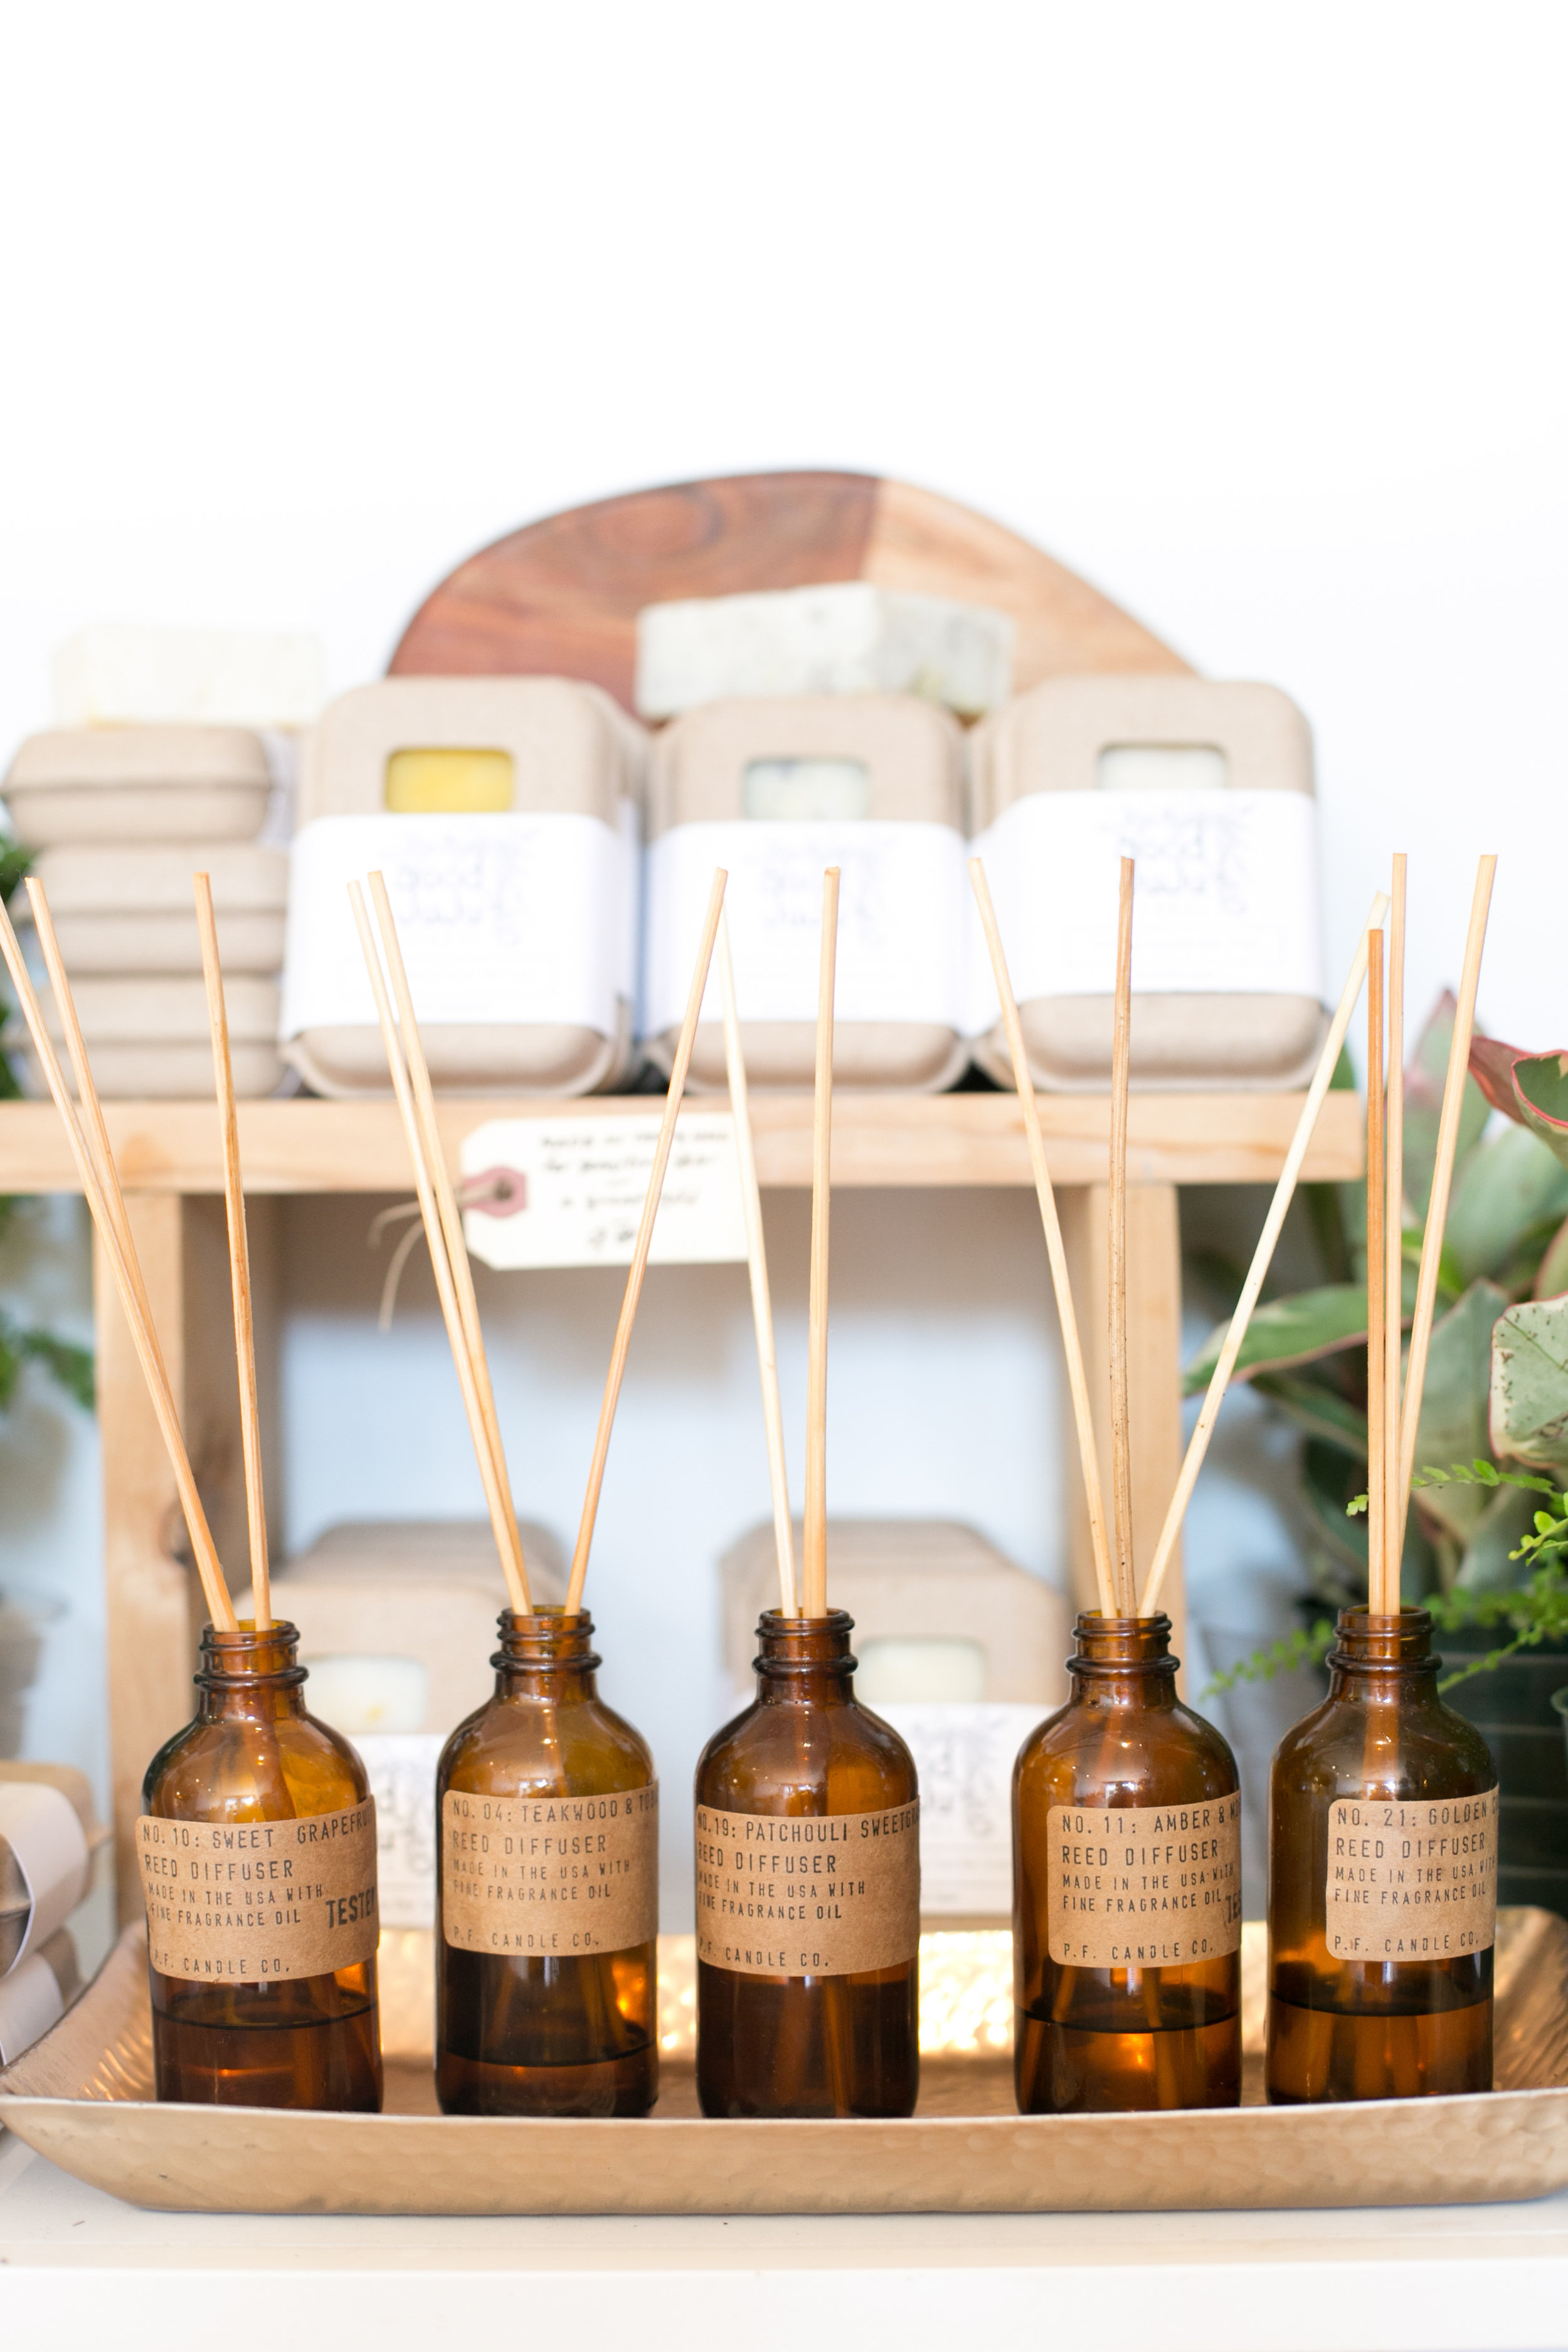 We have a great selection of scents, ranging from deep and sensuous to bright and citrusy.